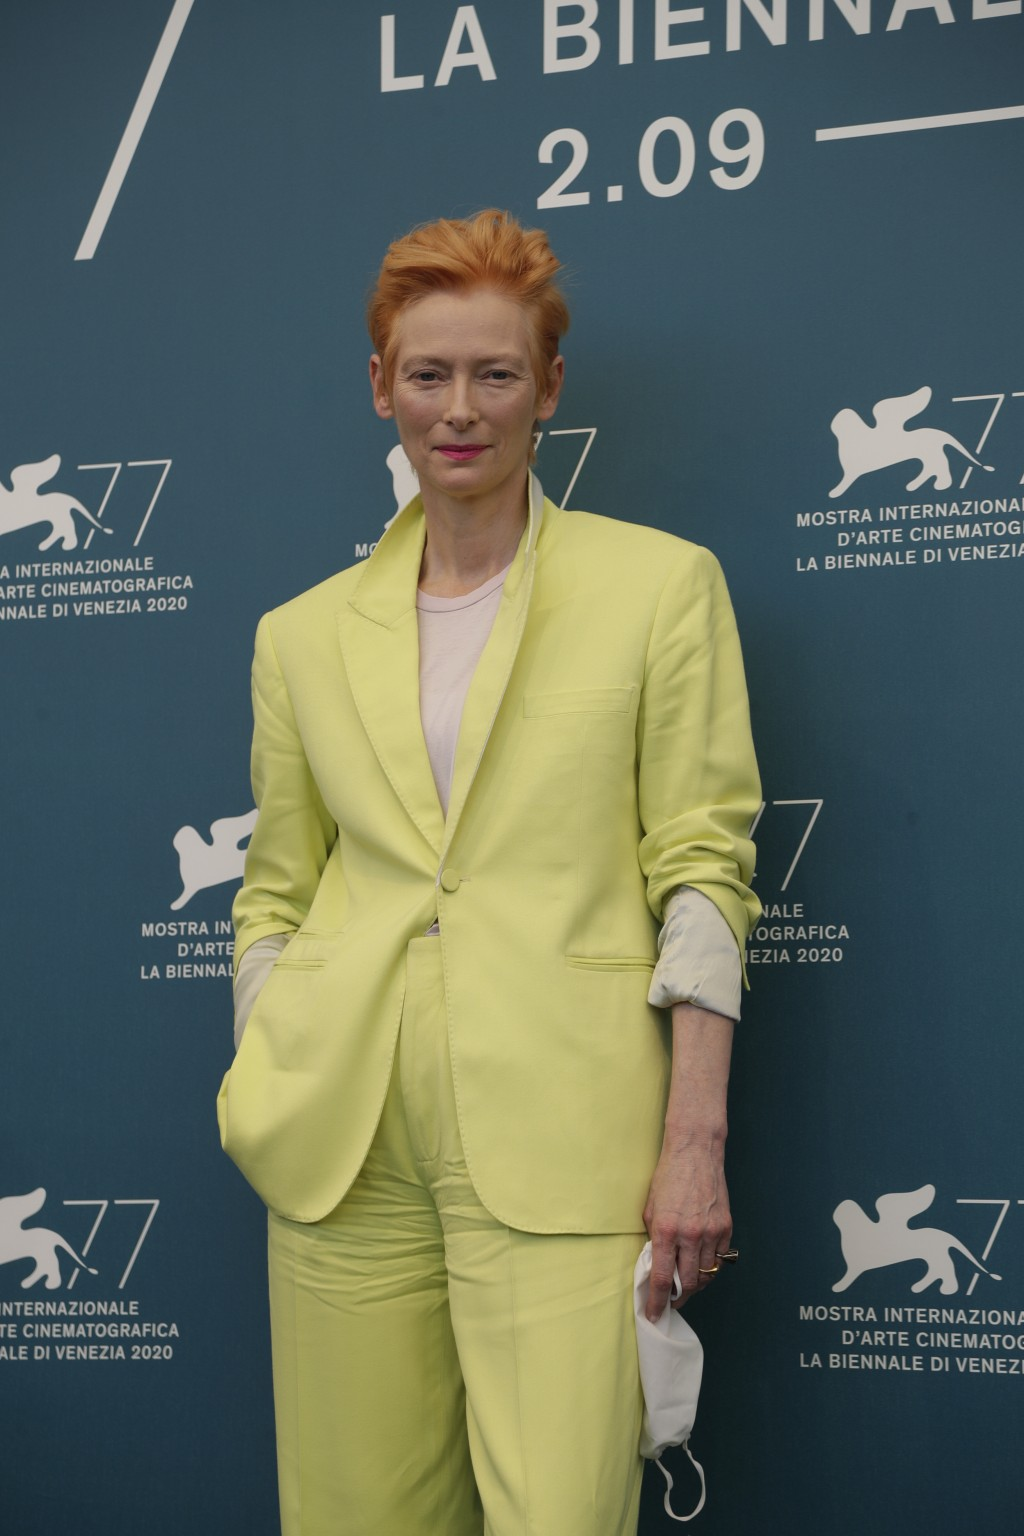 Actress Tilda Swinton poses during the photo call for the movie 'The human voice' during the 77th edition of the Venice Film Festival at the Venice Li...